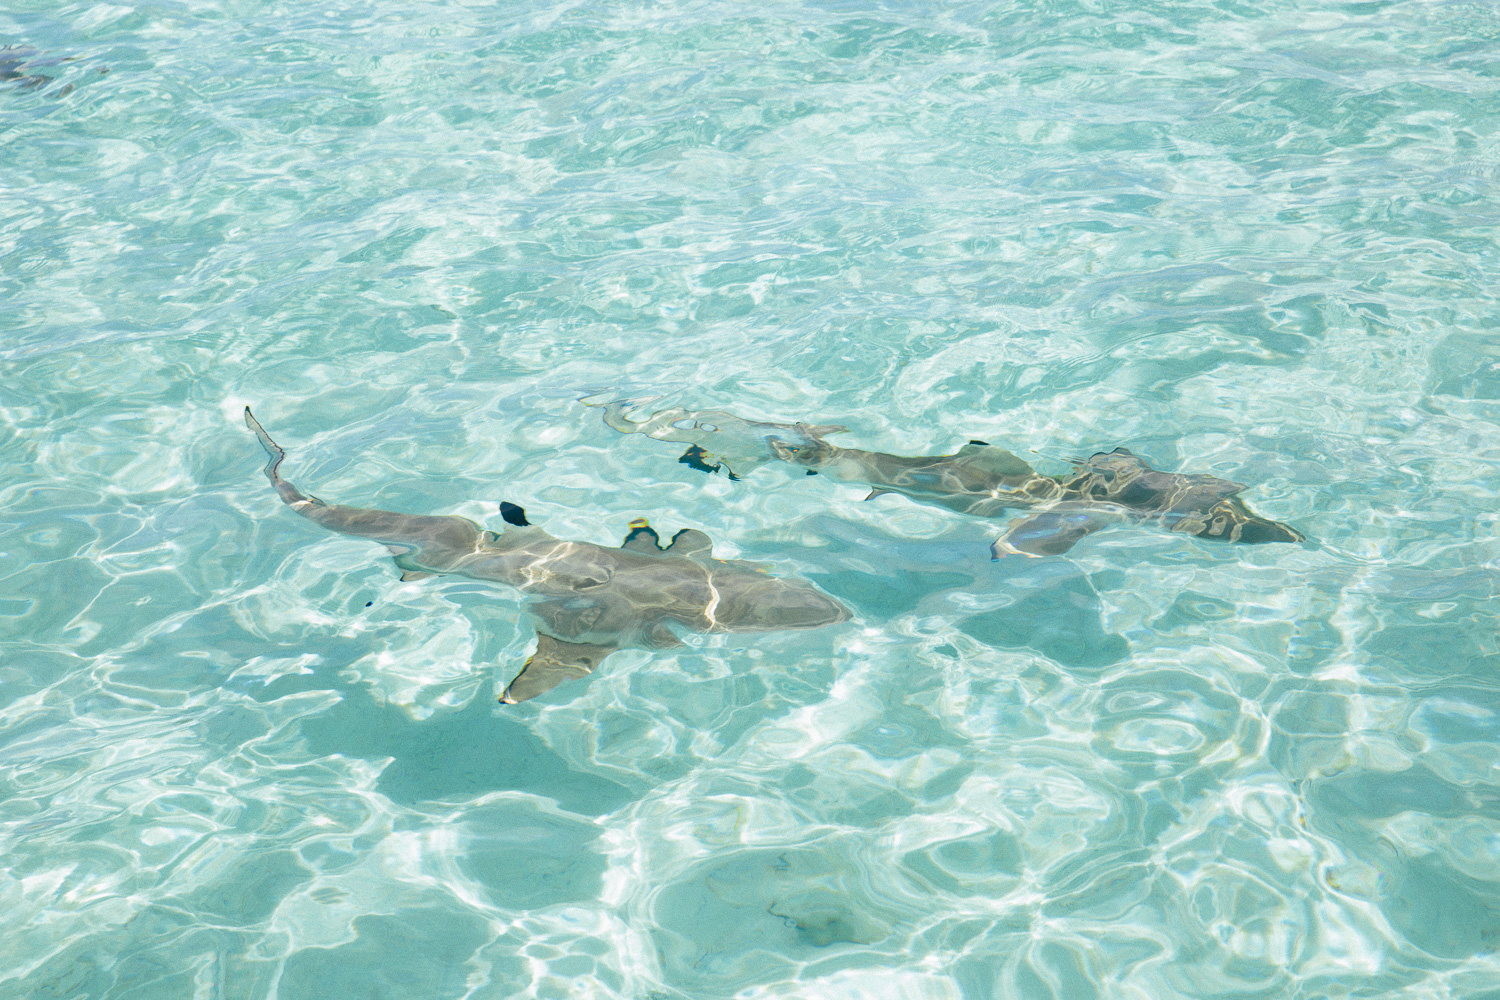 Snorkeling with sharks - an unforgettable experience